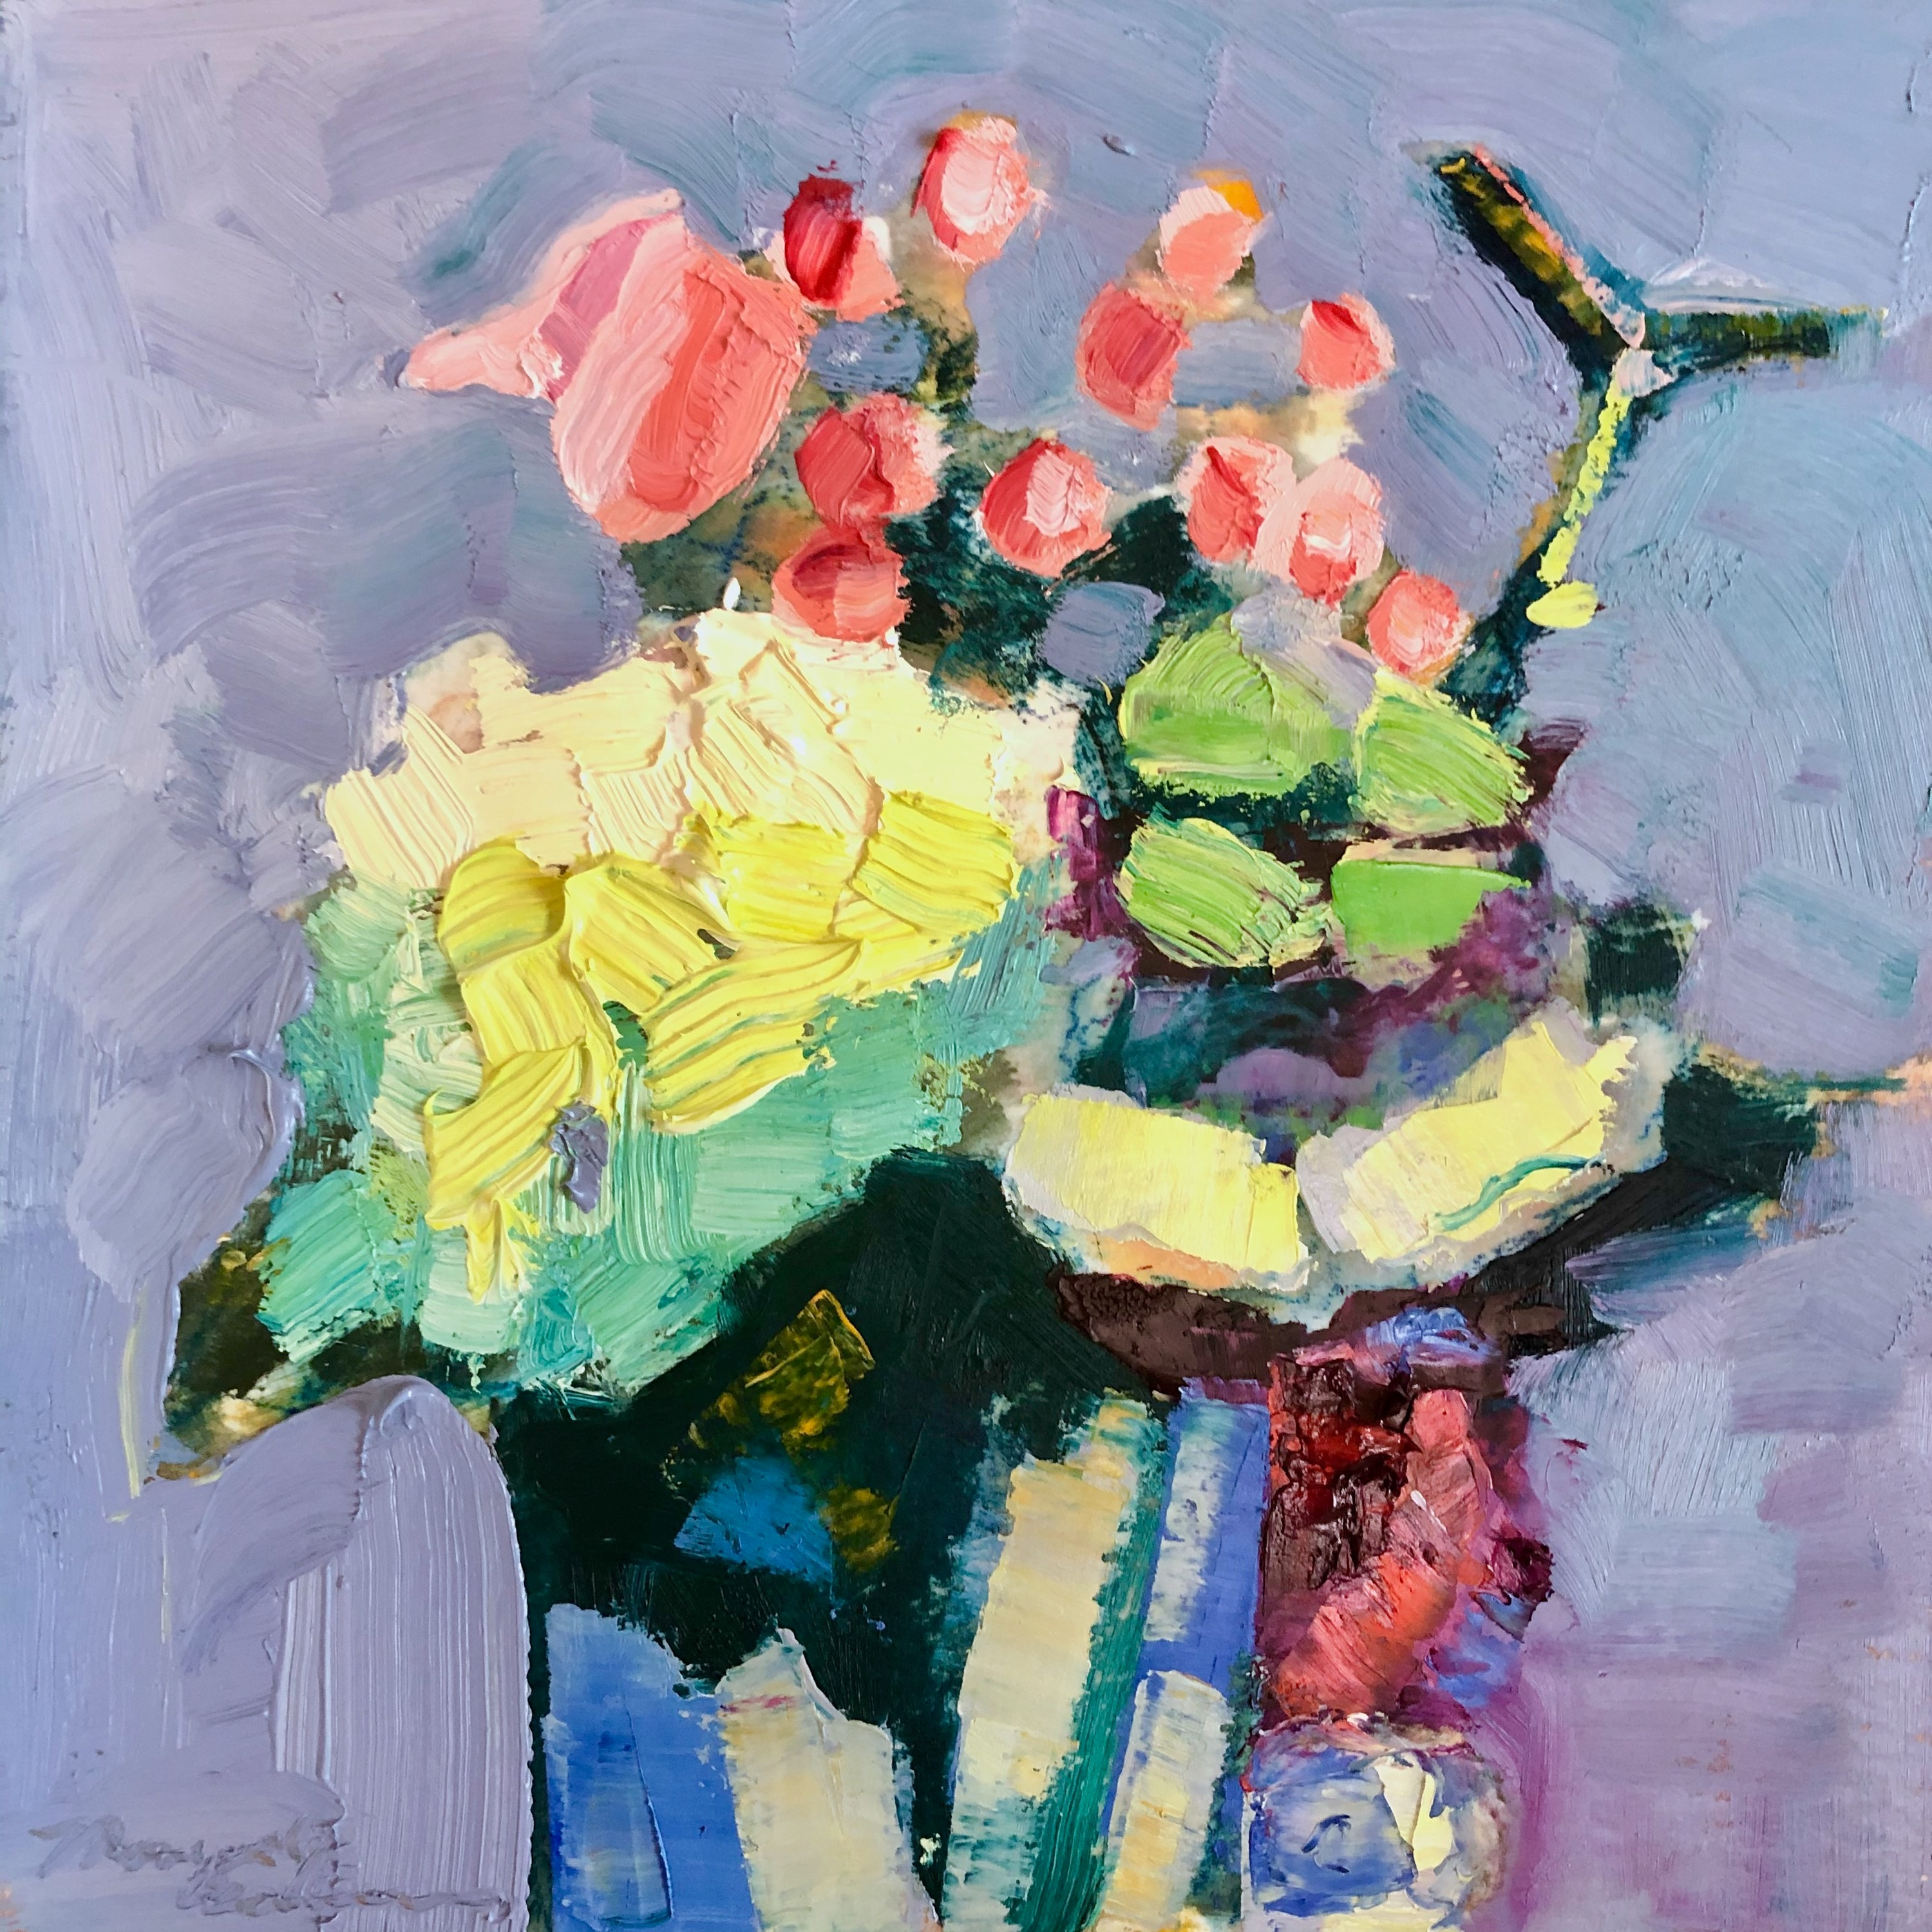 Together still life with hydrangea roses hypericum mums and astrantia oil on multimedia board 8x8 b7jfjo